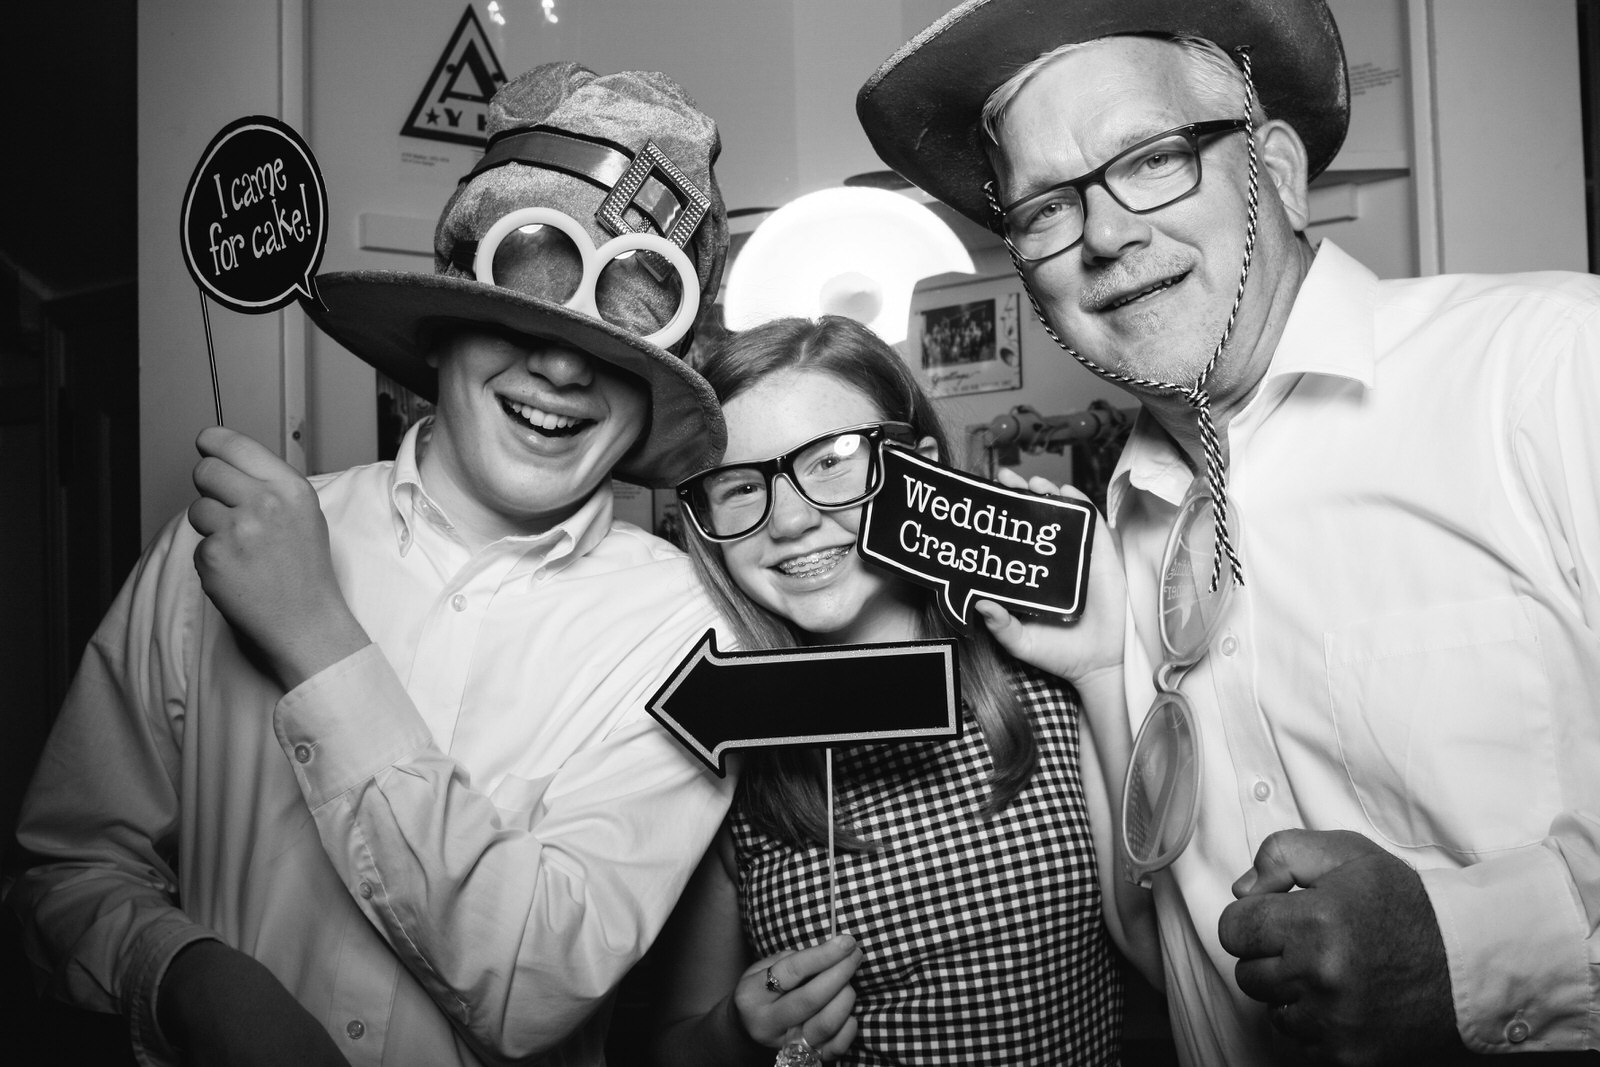 Richard-Donna-Wedding-Photo-Booth-19.jpg